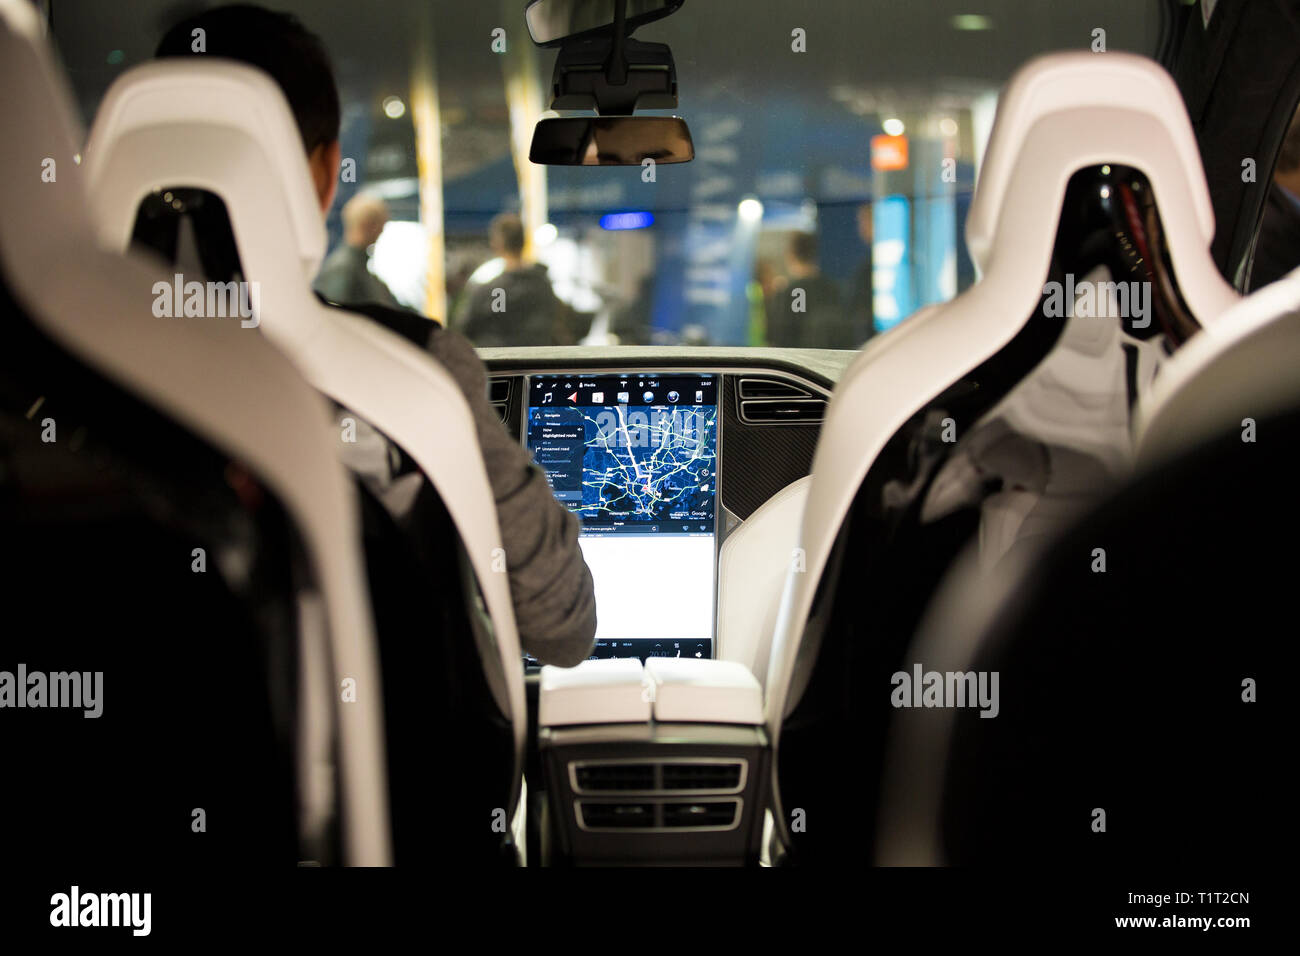 HELSINKI, FINLAND - NOVEMBER 04, 2016: The interior of a Tesla Model X electric car with large touch screen dashboard.  Seats. - Stock Image